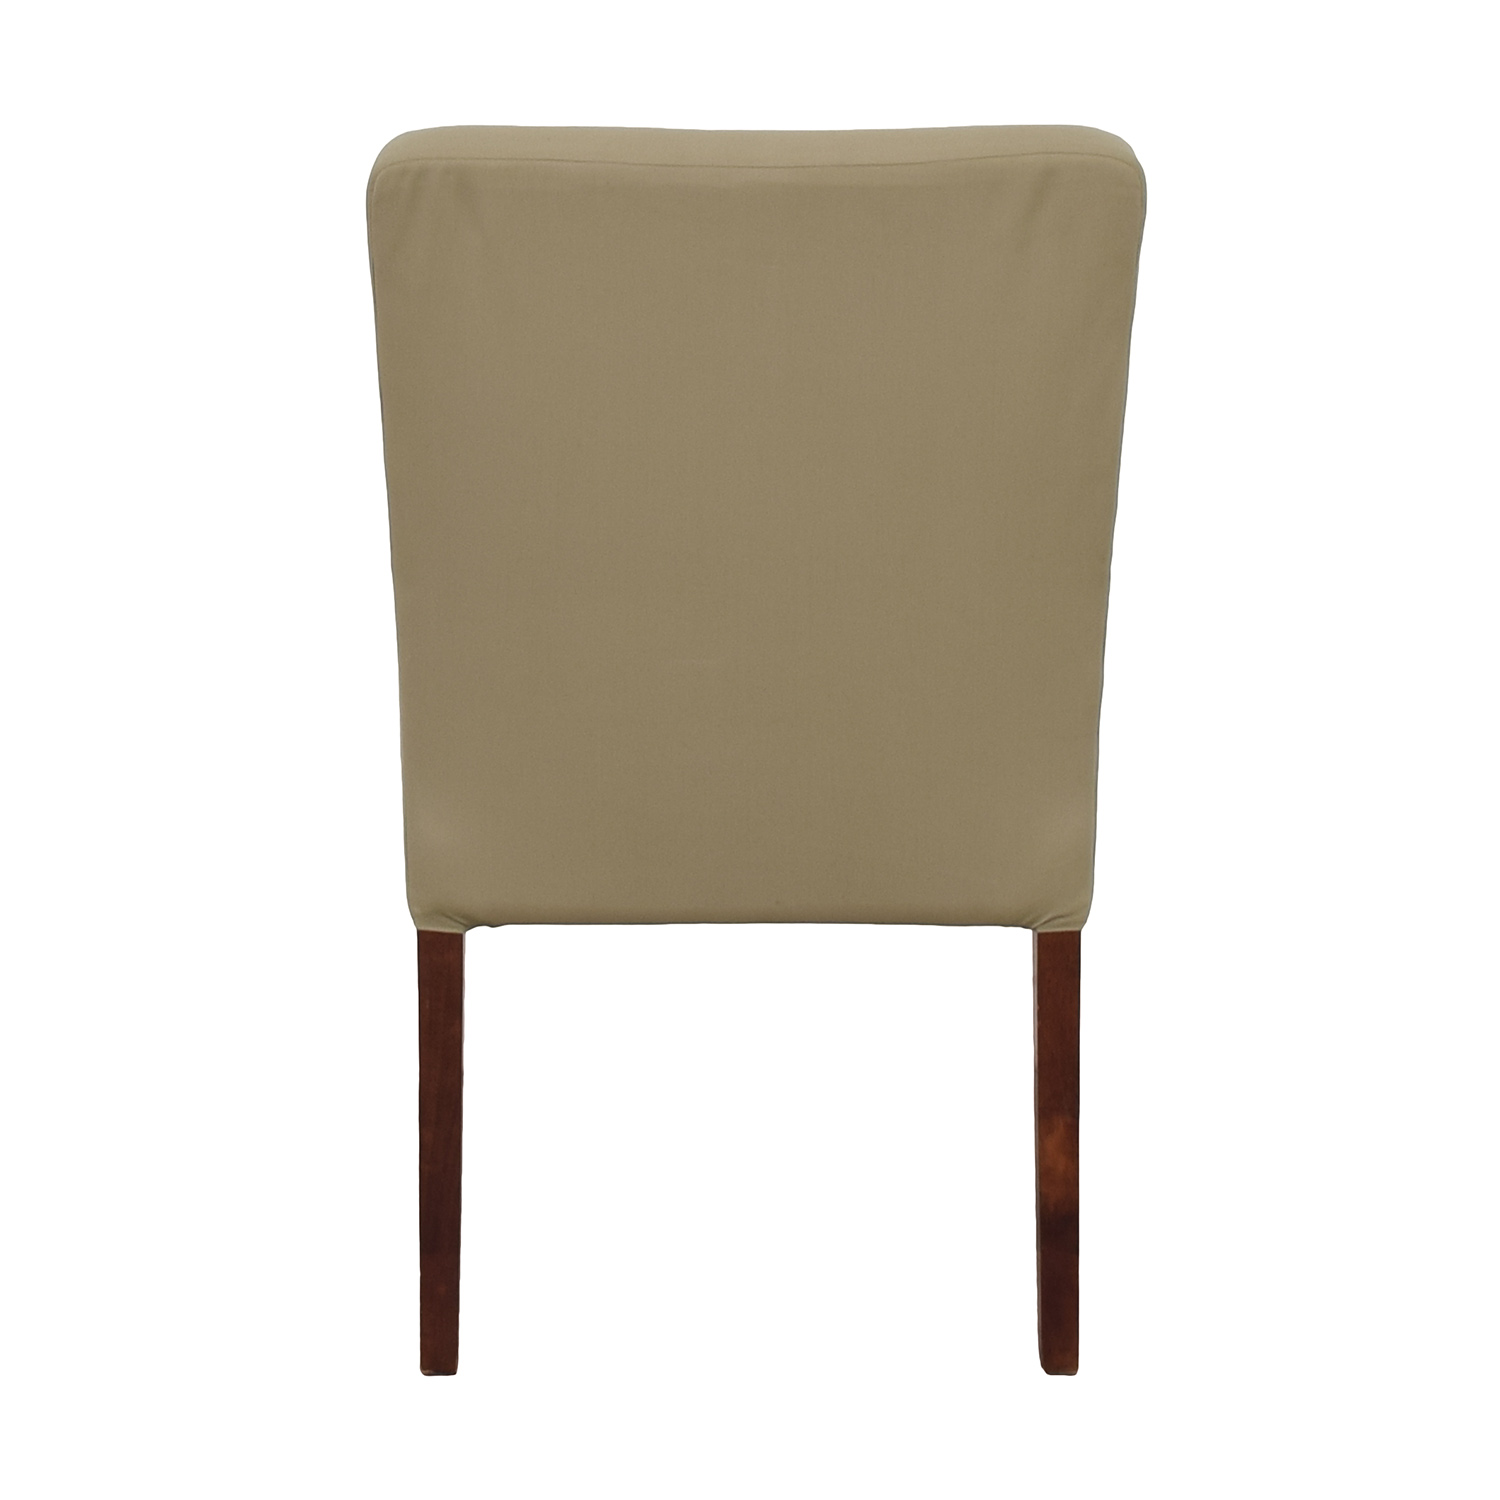 Pottery Barn Megan Beige Accent Chair Pottery Barn